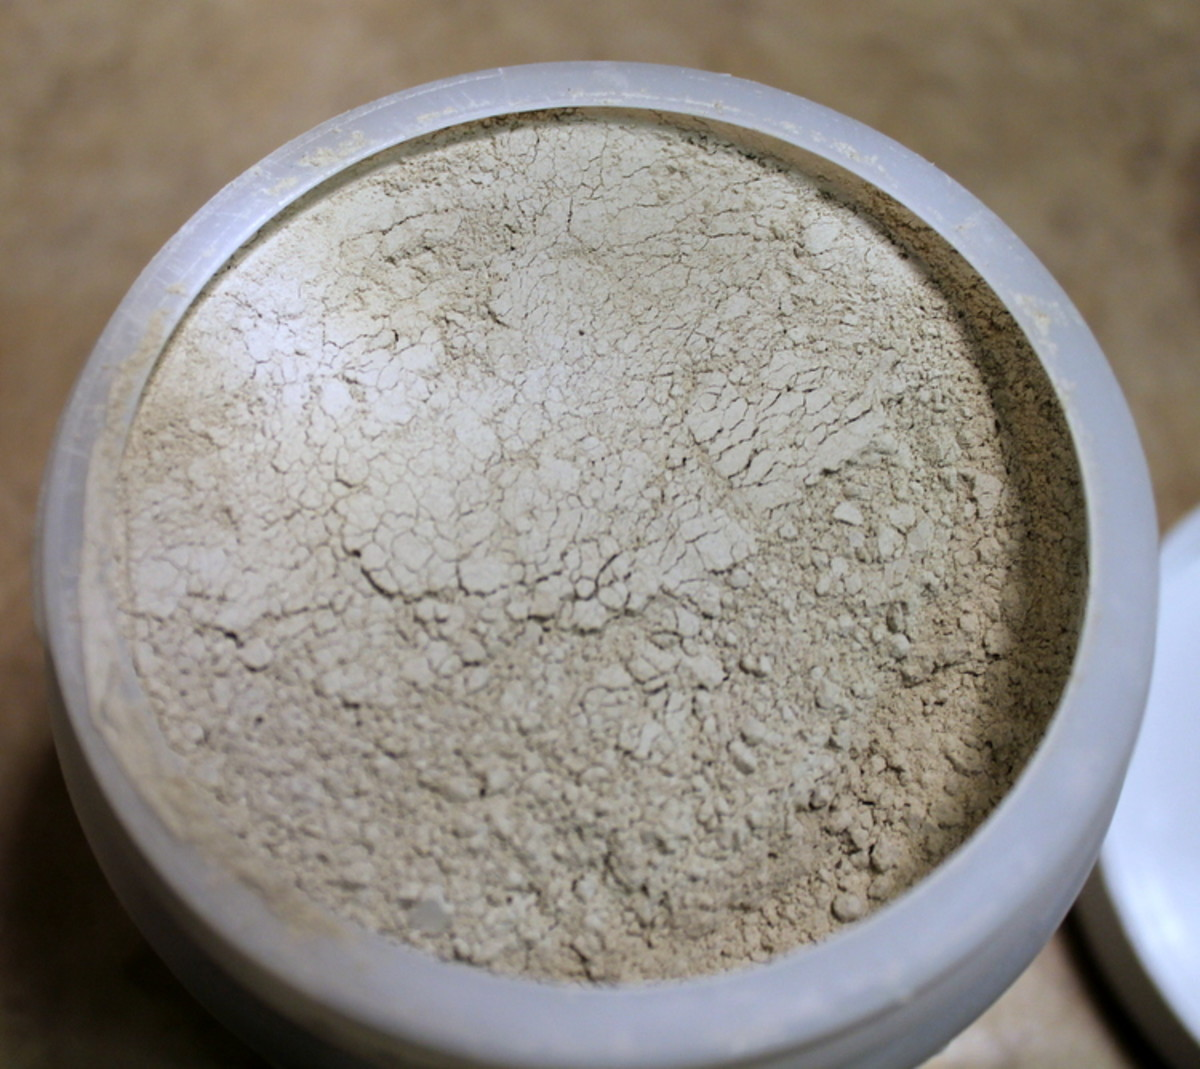 Bentonite clay looks white, but it turns green when mixed in.